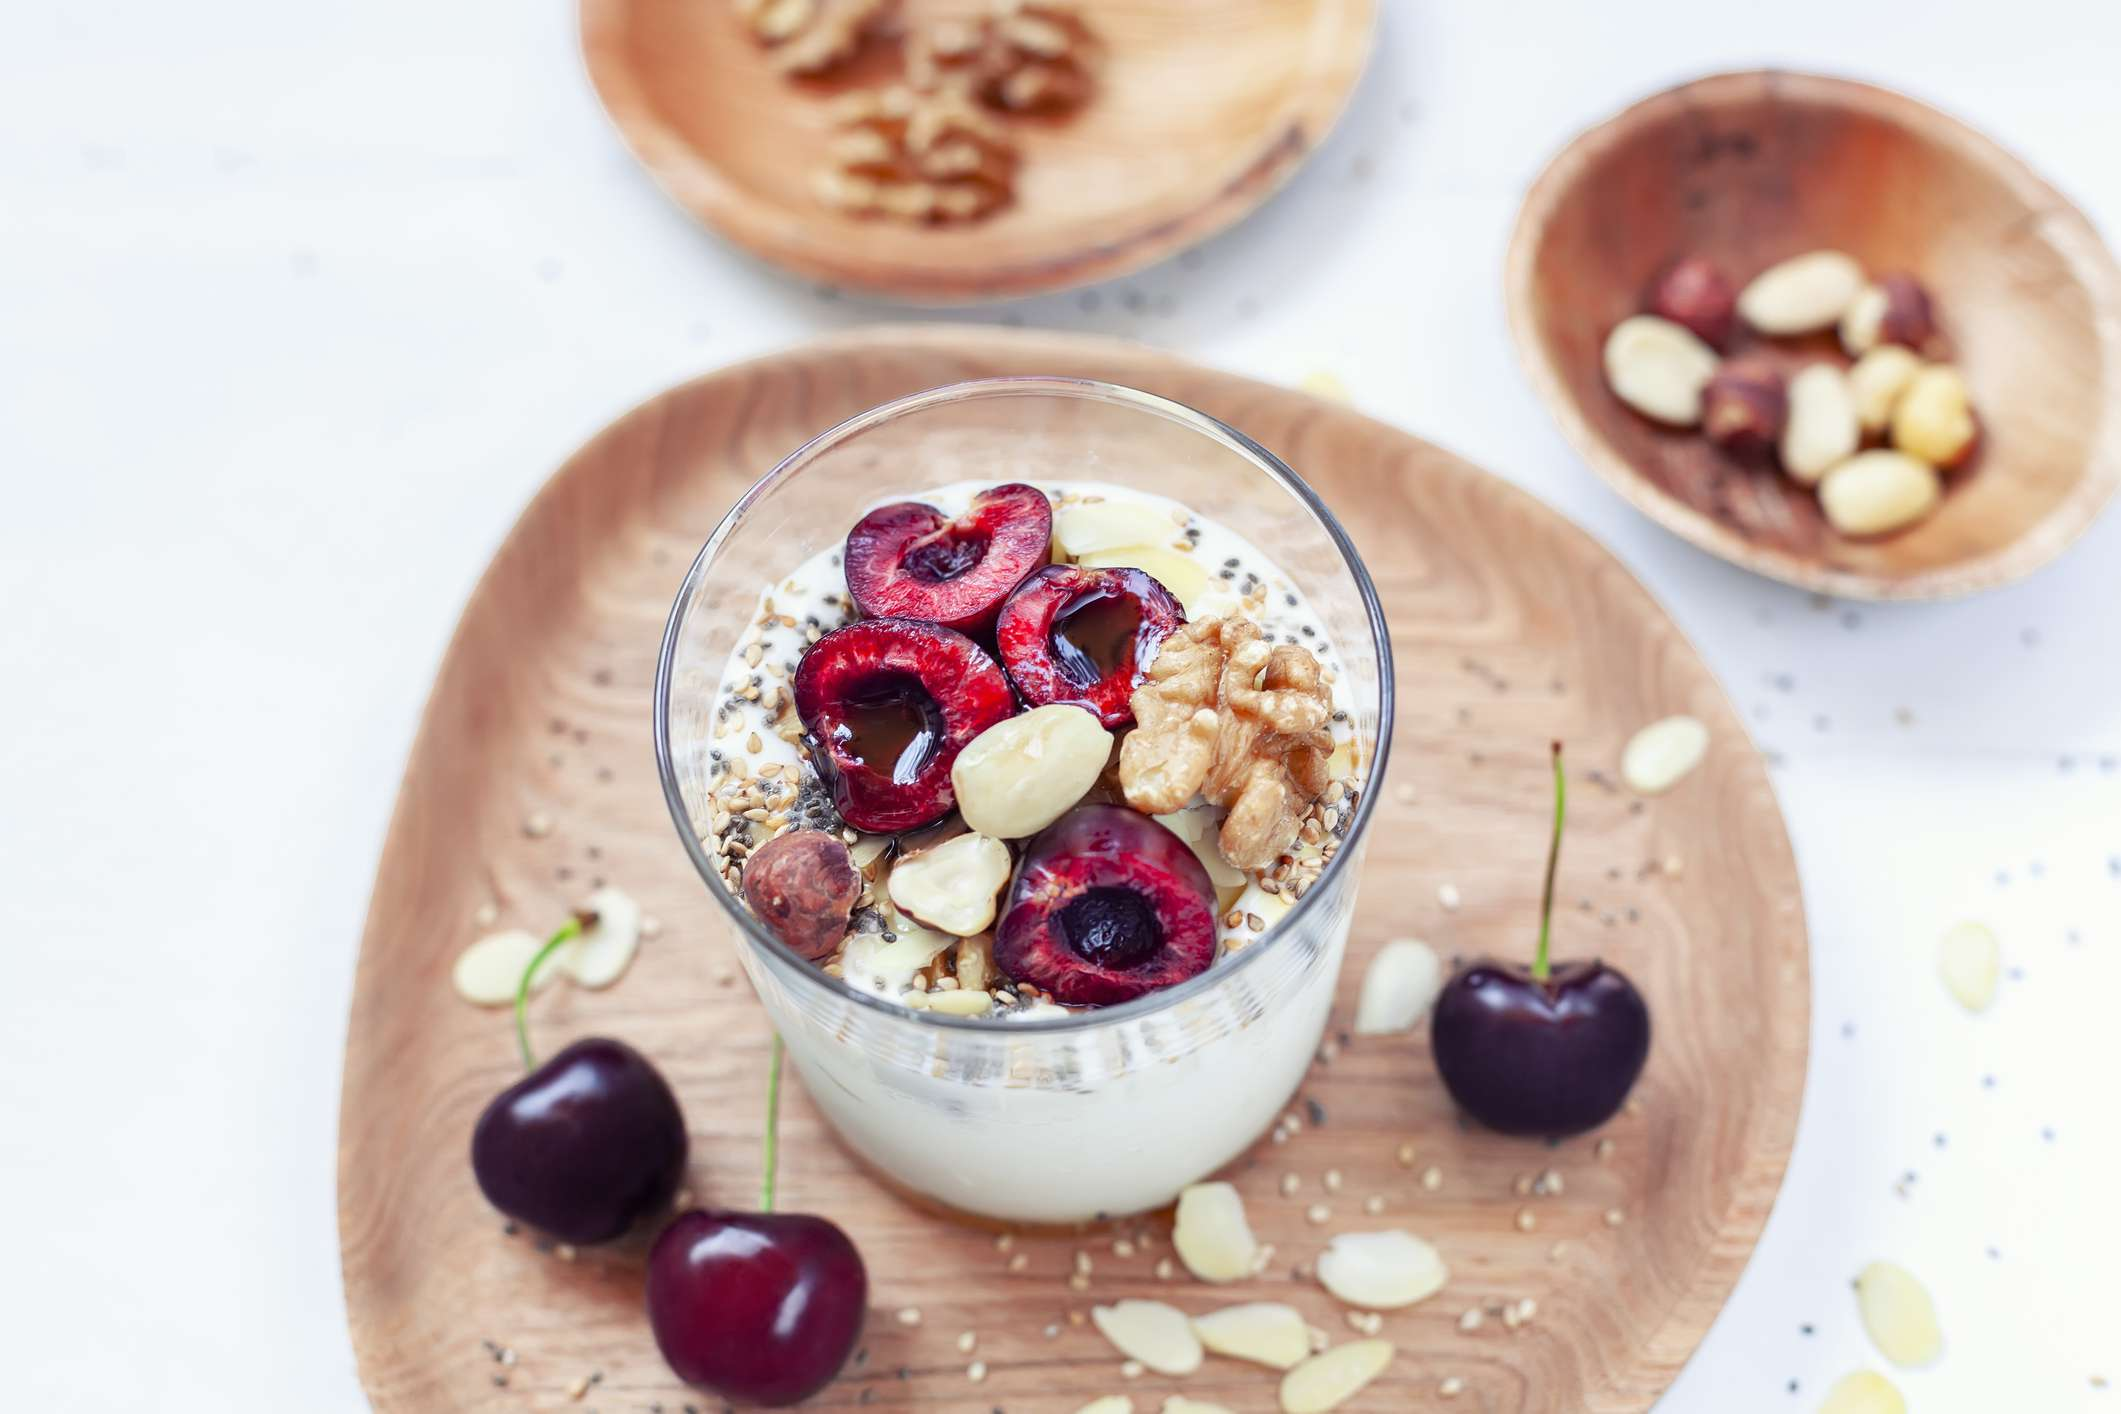 Glass of greek yogurt topped with cherries and nuts. Sitting atop a wooden plate with cherries and nuts on the side.